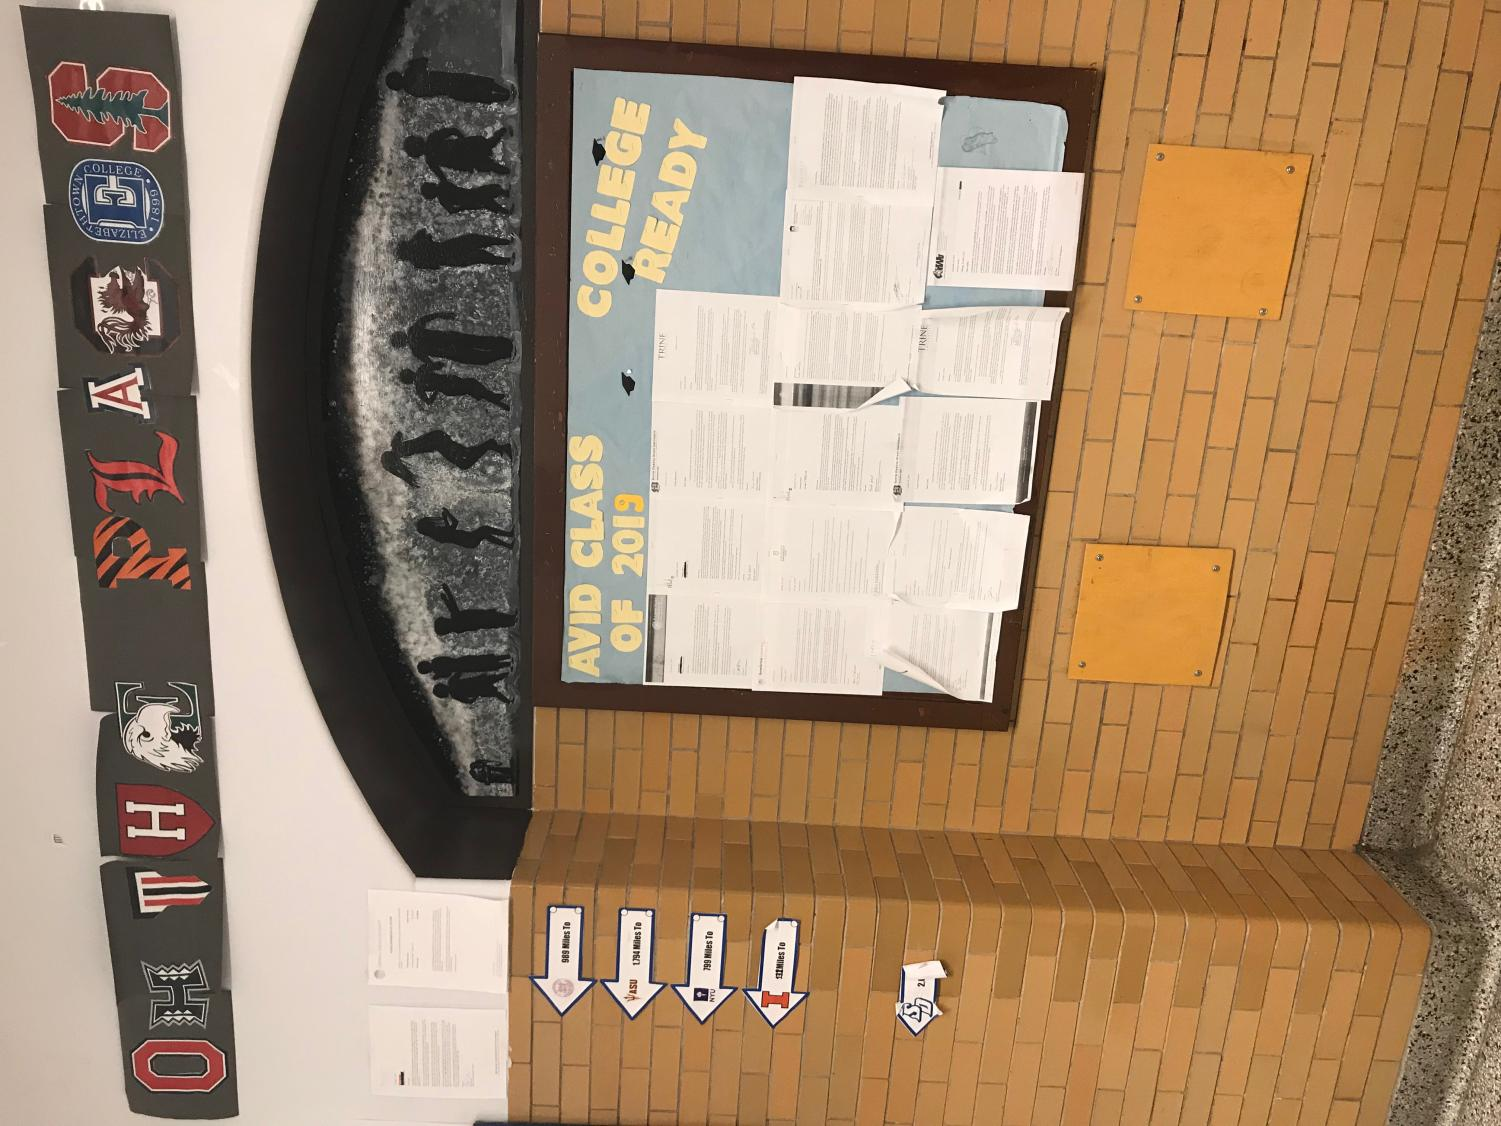 The AVID Program's wall shows what colleges and universities their students have chosen to attend for the next four years.